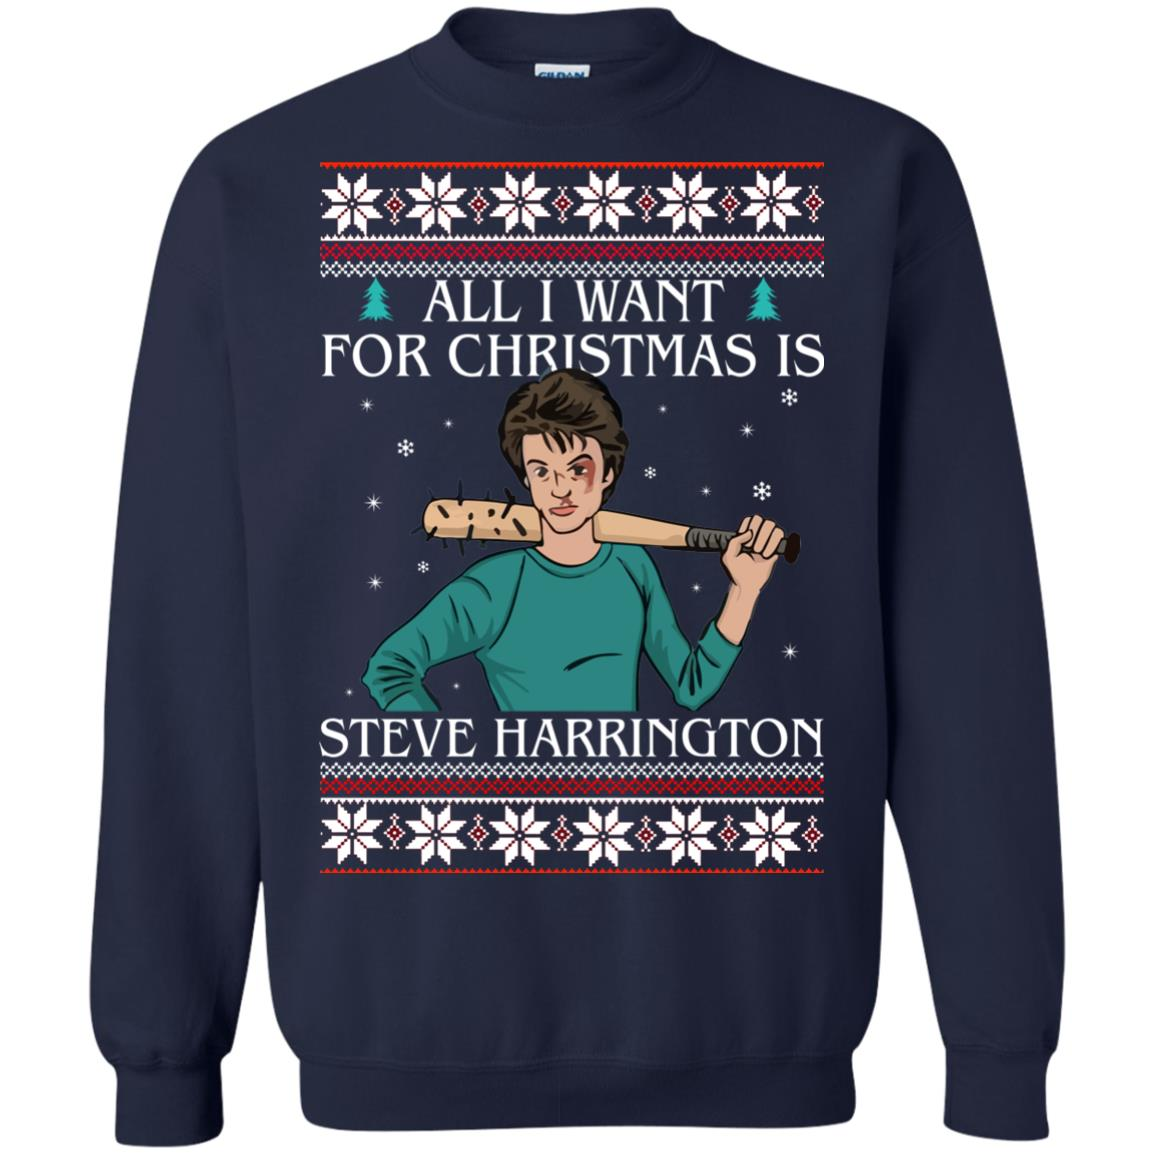 image 4035 - All I want for Christmas is Steve Harrington Ugly Sweater